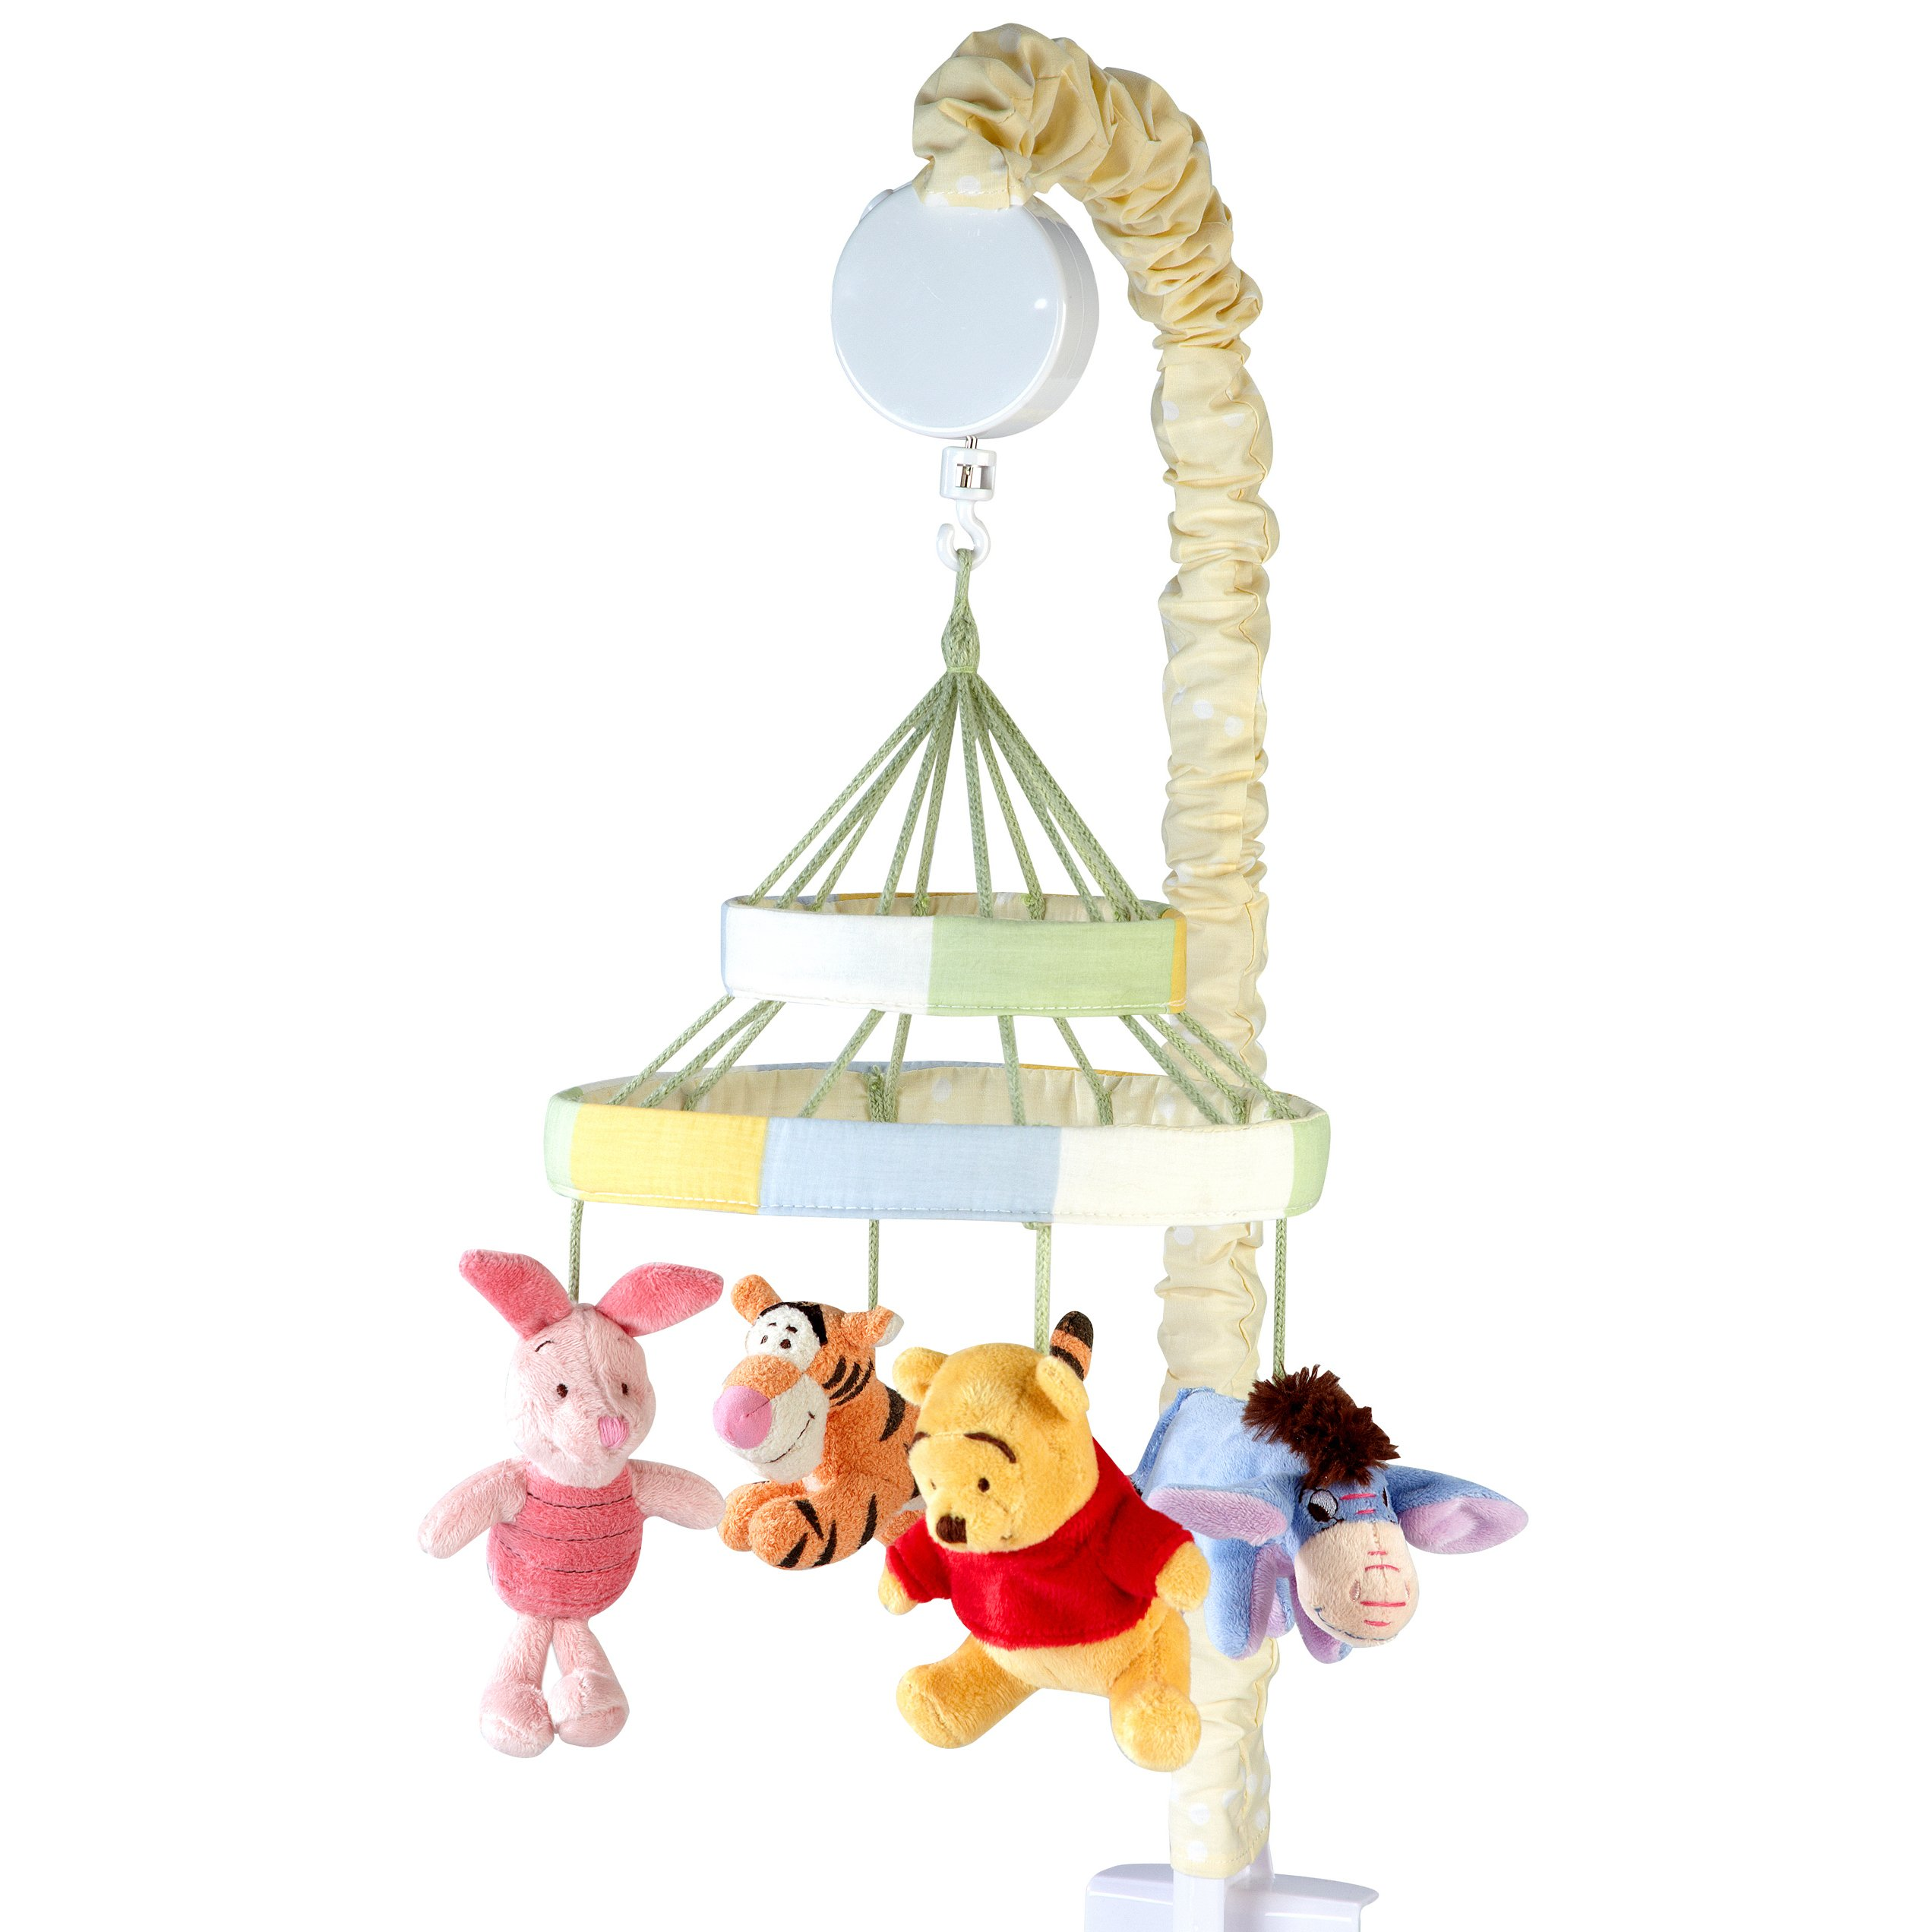 Disney Winnie the Peeking Pooh Nursery Crib Musical Mobile, Yellow, Orange, Blue